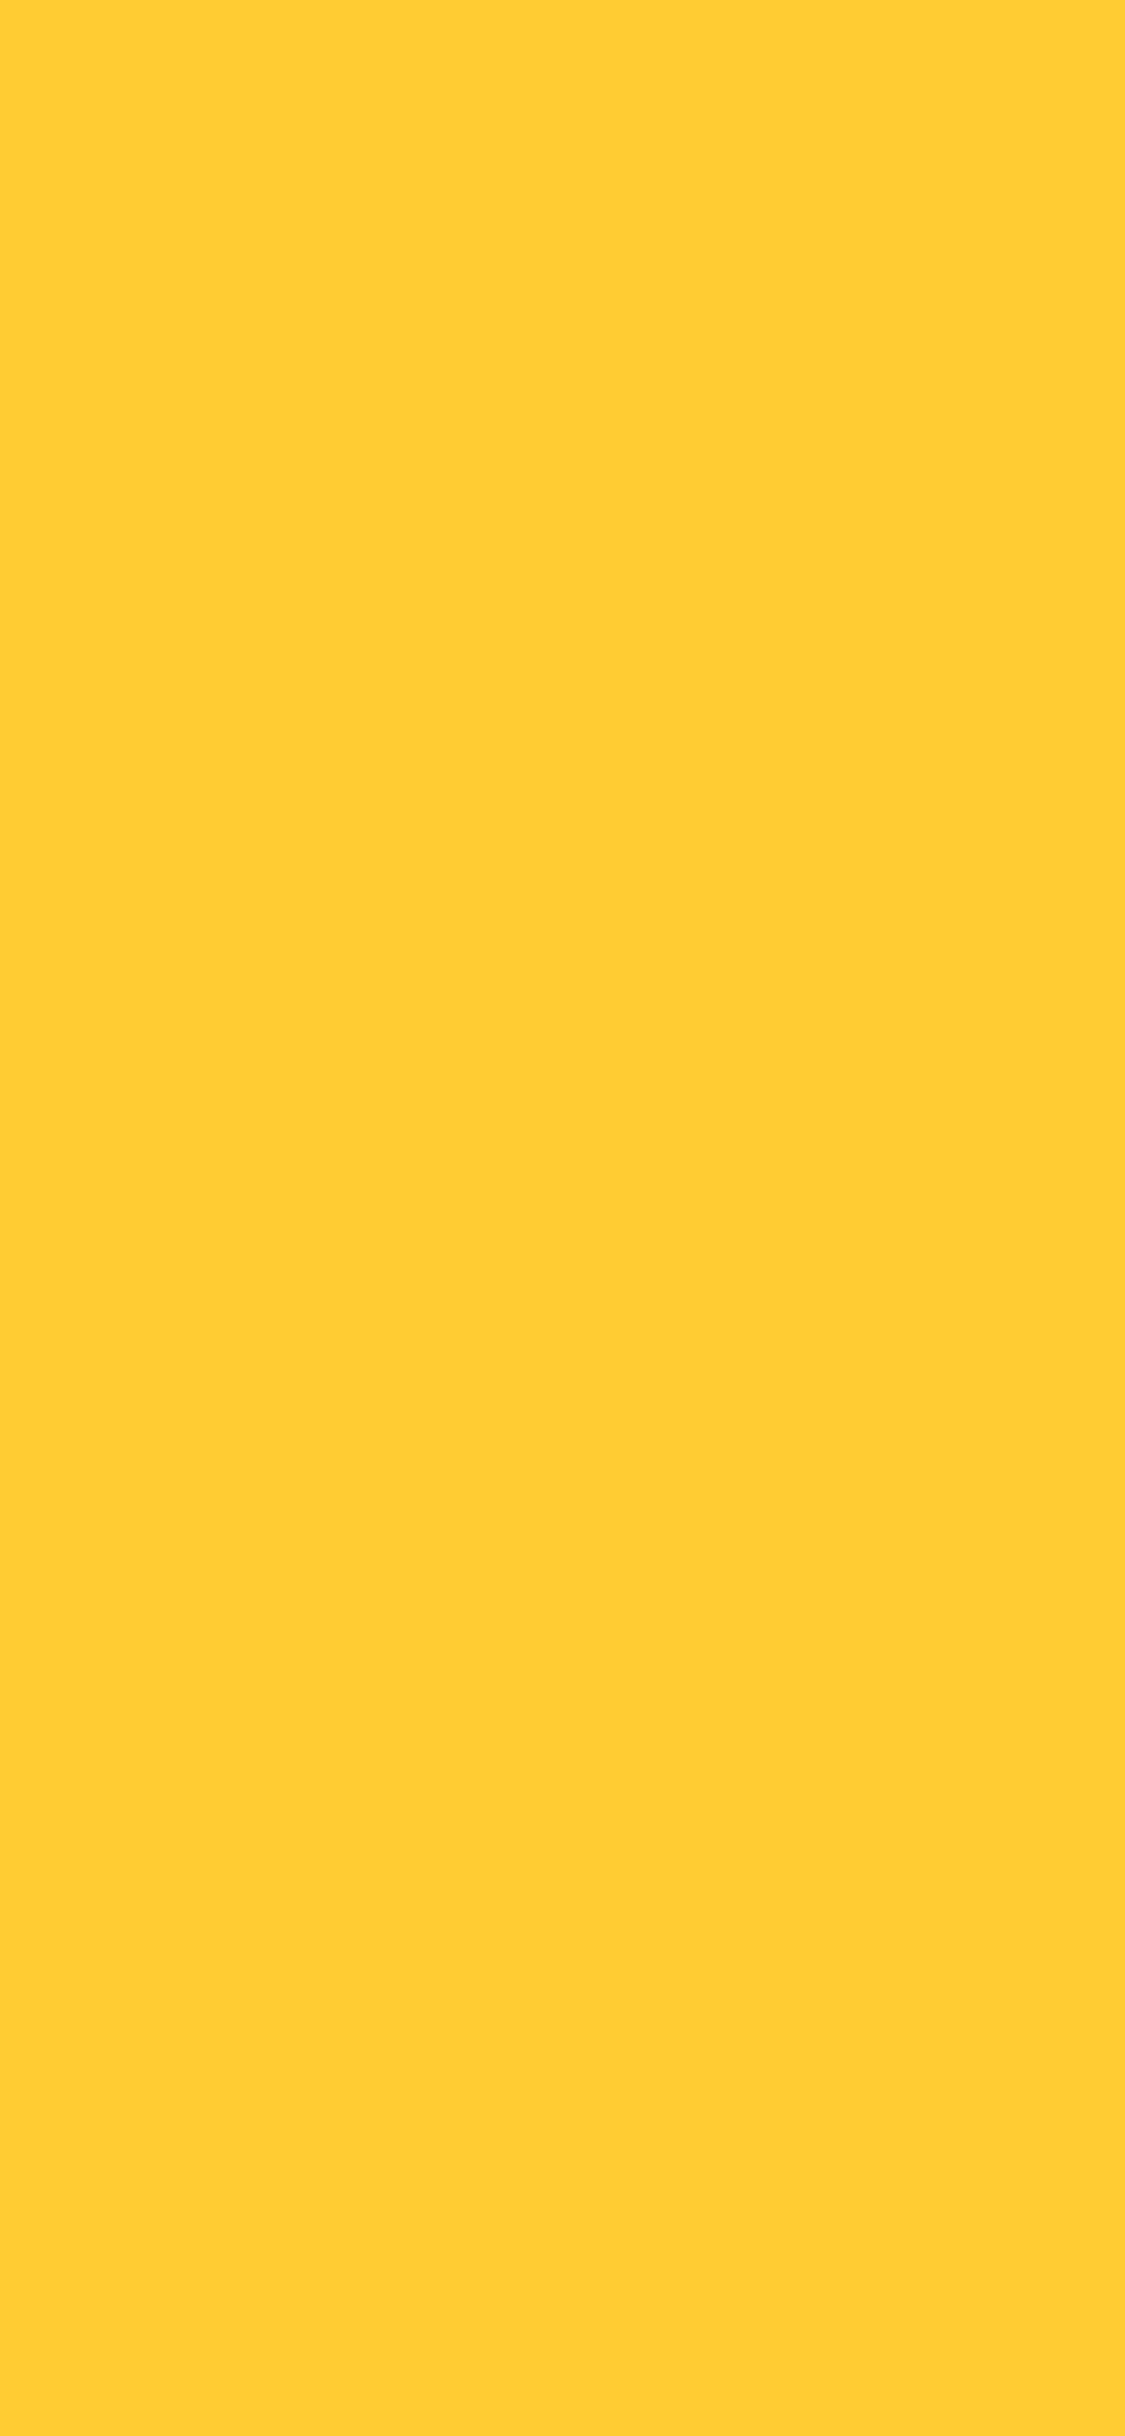 1125x2436 Sunglow Solid Color Background